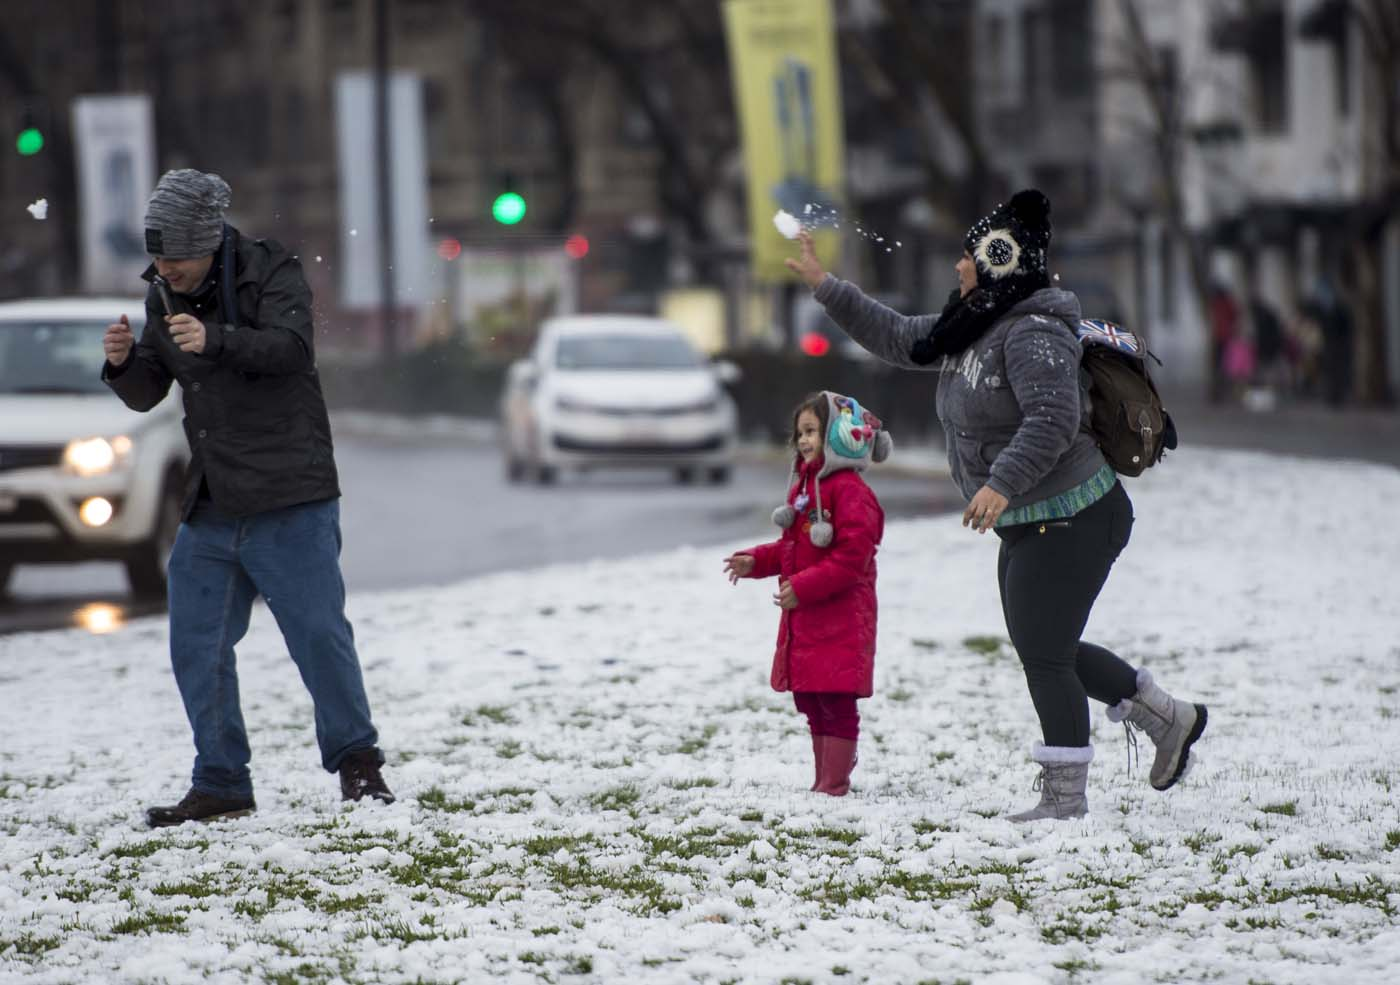 People play with snow in Santiago on July 15, 2017.  An unusual snowfall --the first of such intensity since 2007-- surprised the inhabitants of the Chilean capital, causing a few power cuts and minor traffic jams, in particular in the eastern areas of the capital, the closest to the Andes mountain range. / AFP PHOTO / Martin BERNETTI